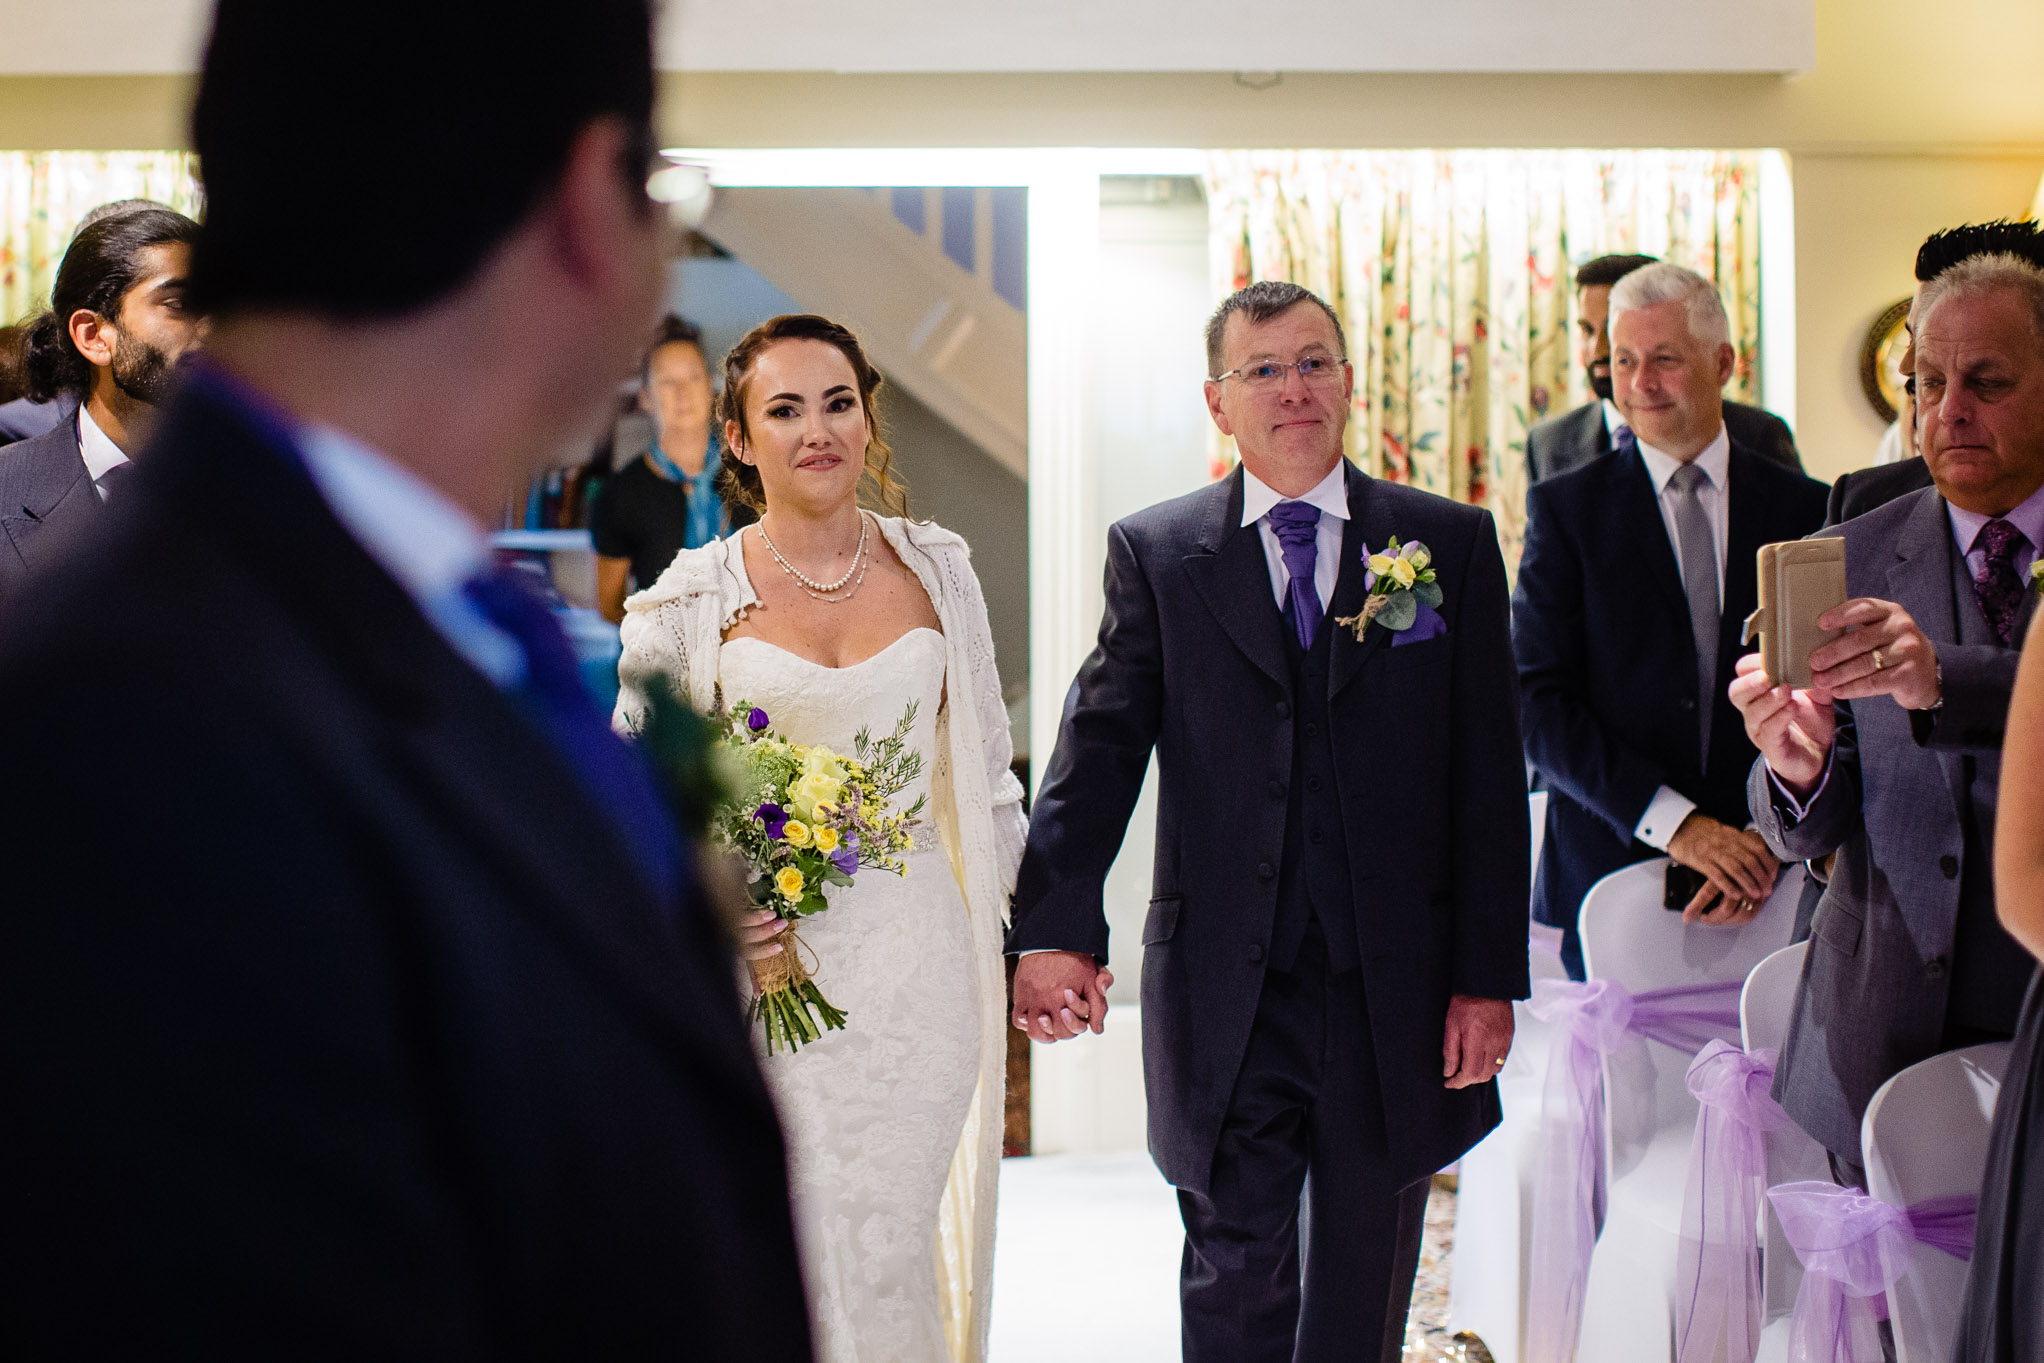 Father of the bride leads his daughter up the aisle